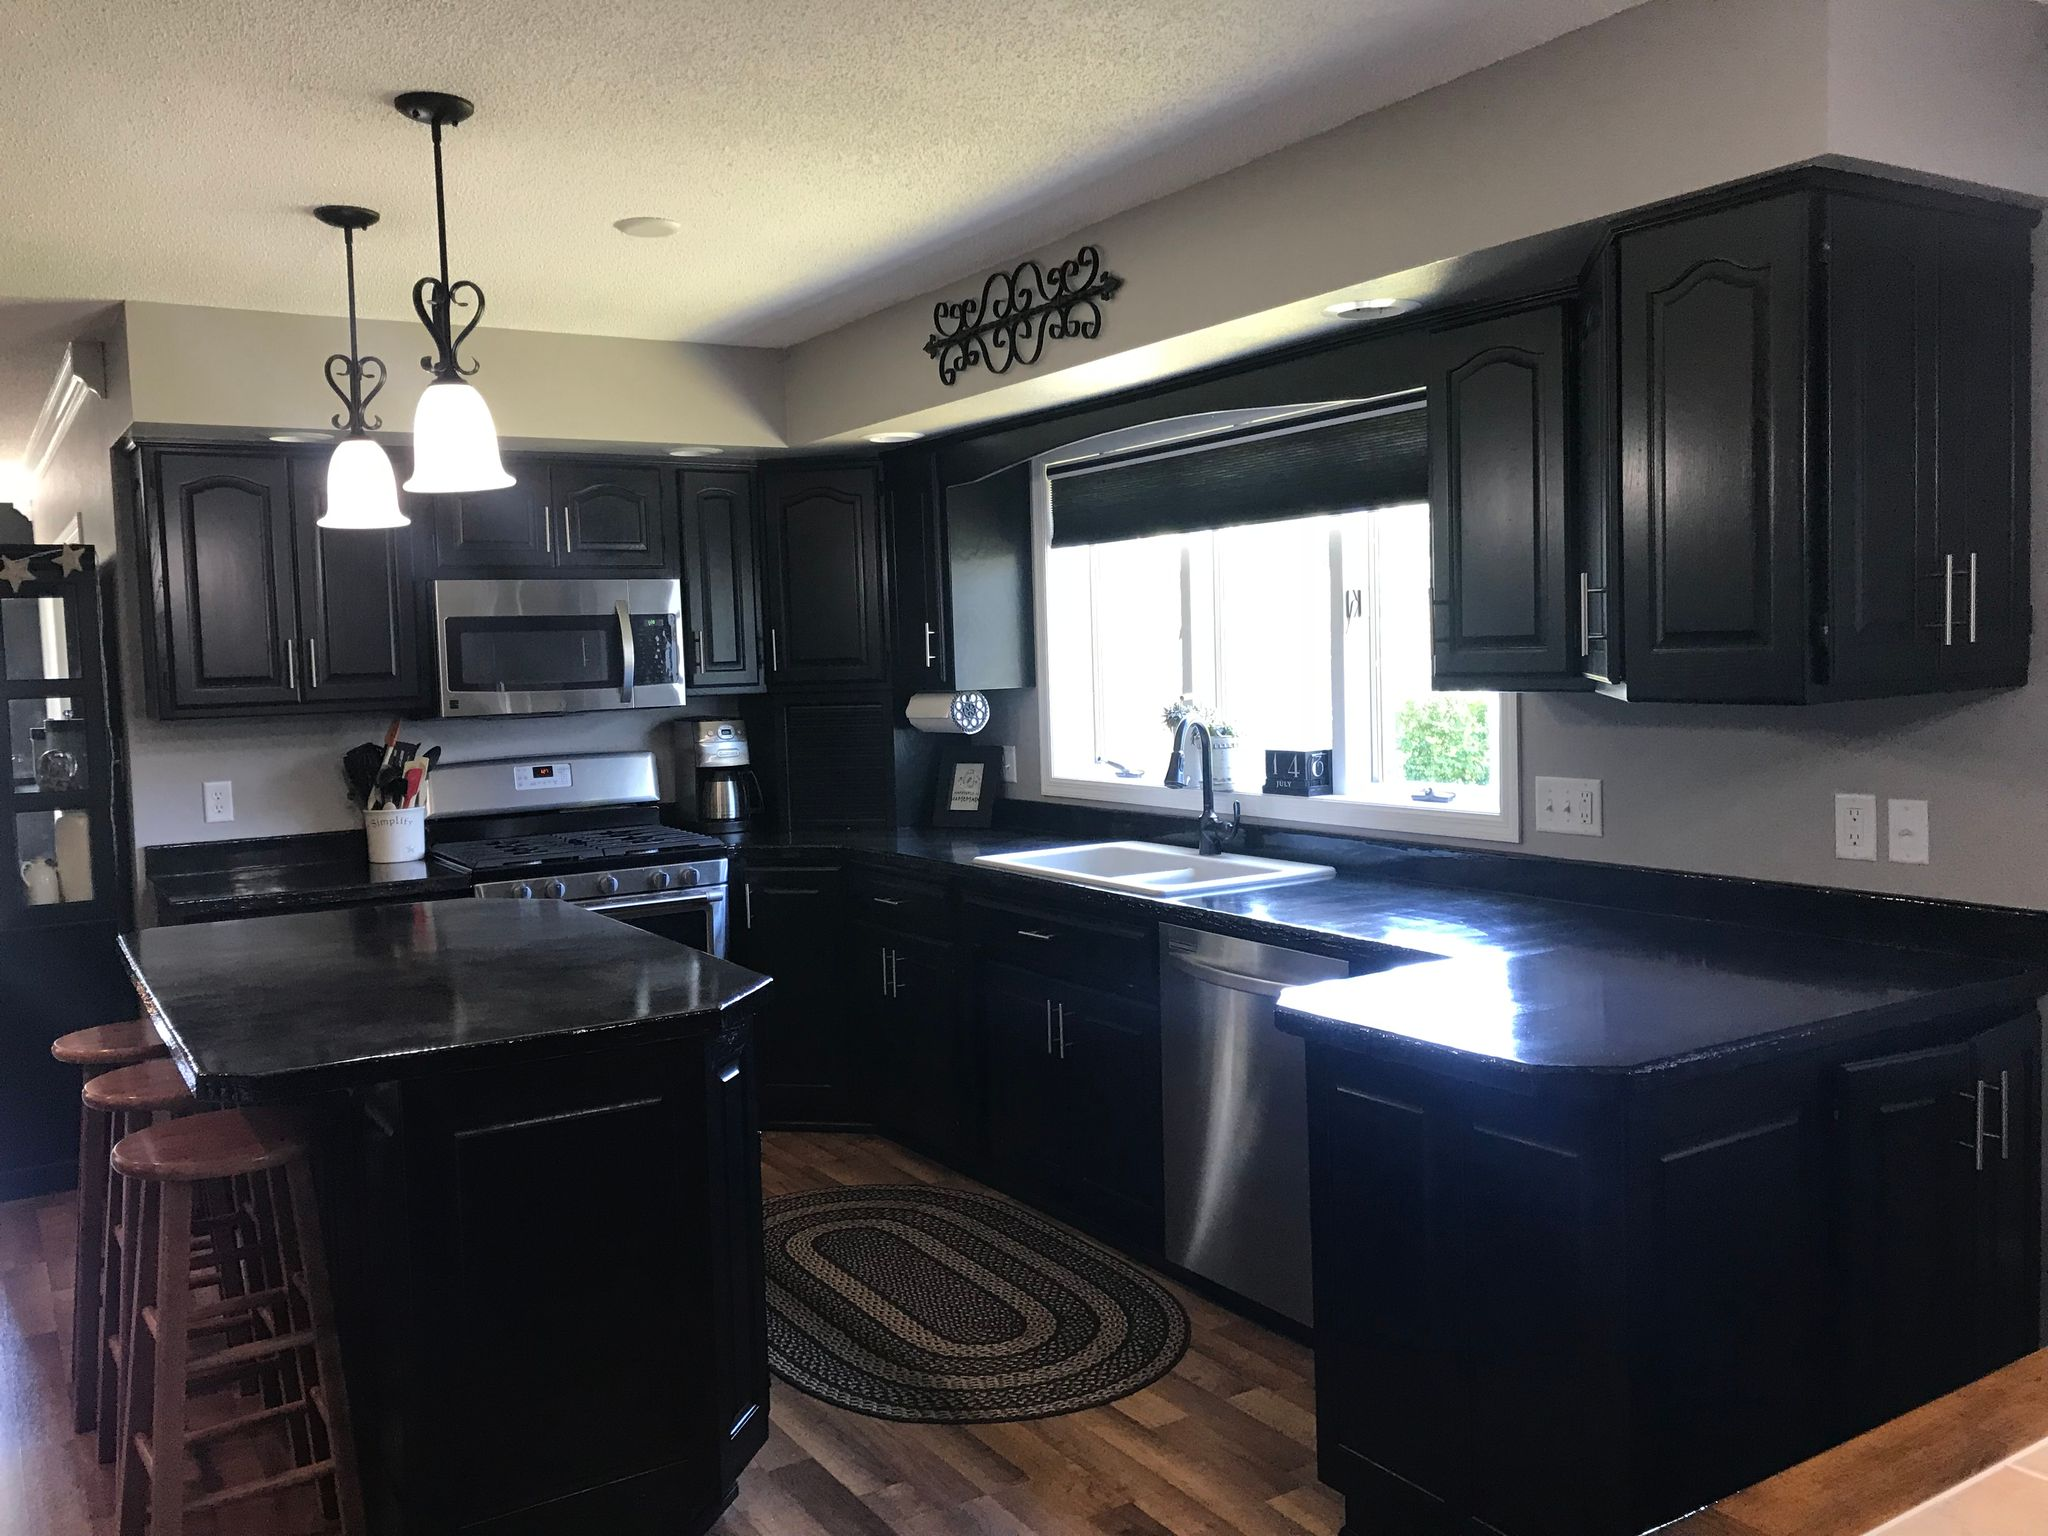 1616 9th Ave SE, Jamestown, ND 58401 - 4 Bed, 2.5 Bath Single-Family Home -  MLS #29-246 - 25 Photos | Trulia